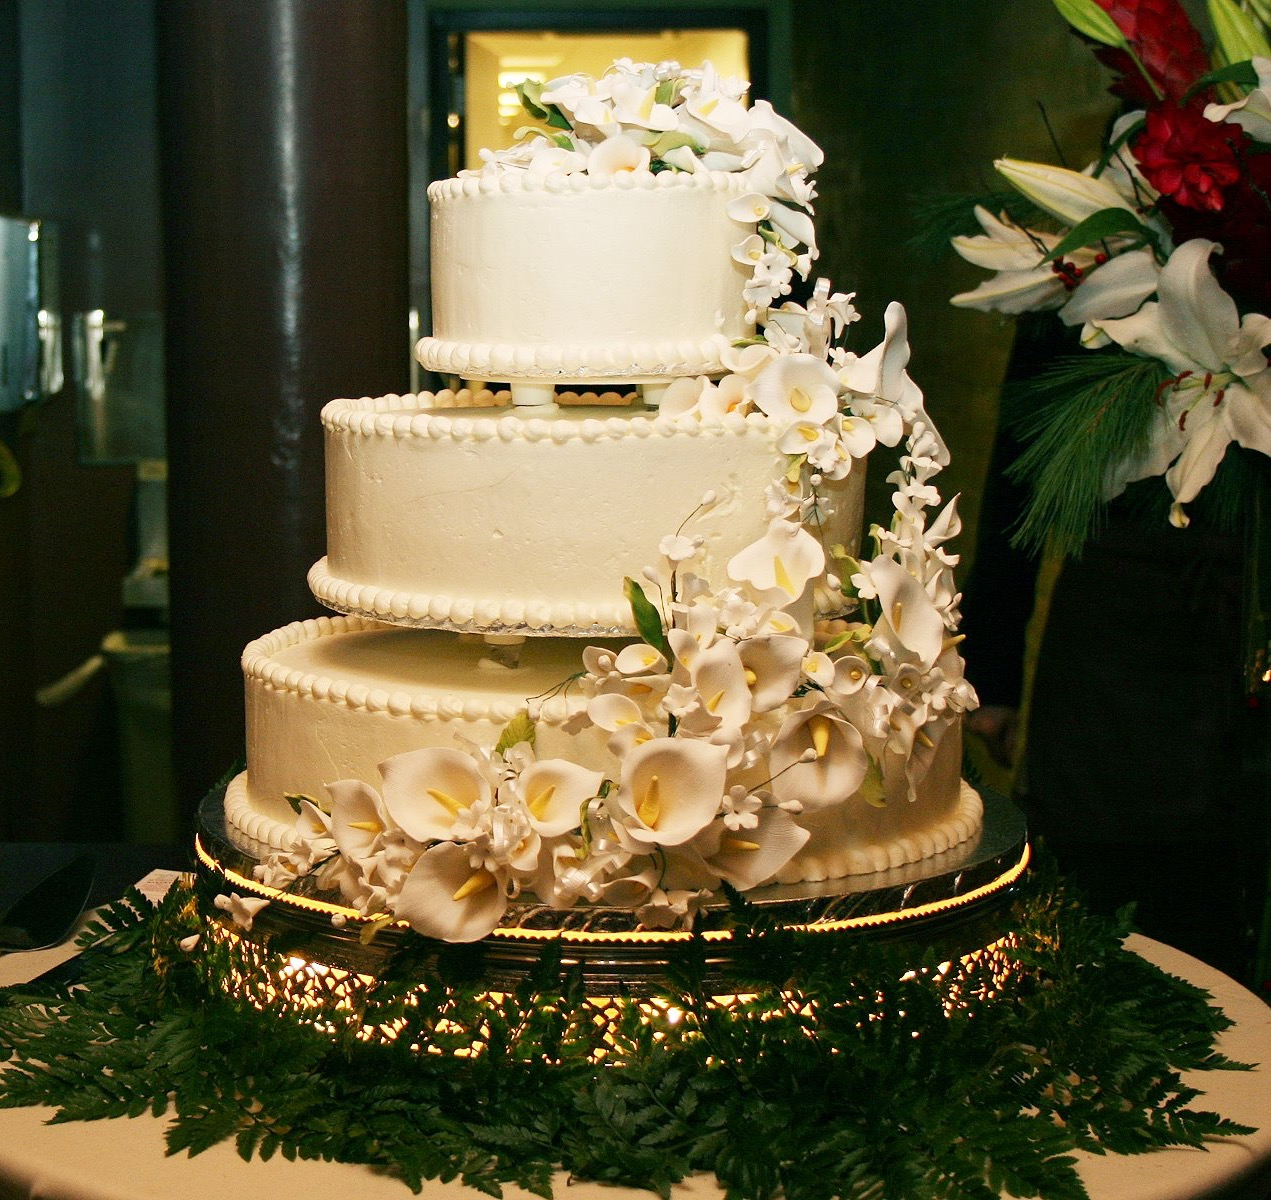 Cakes for All Occasions | Scordato Bakery, Inc.